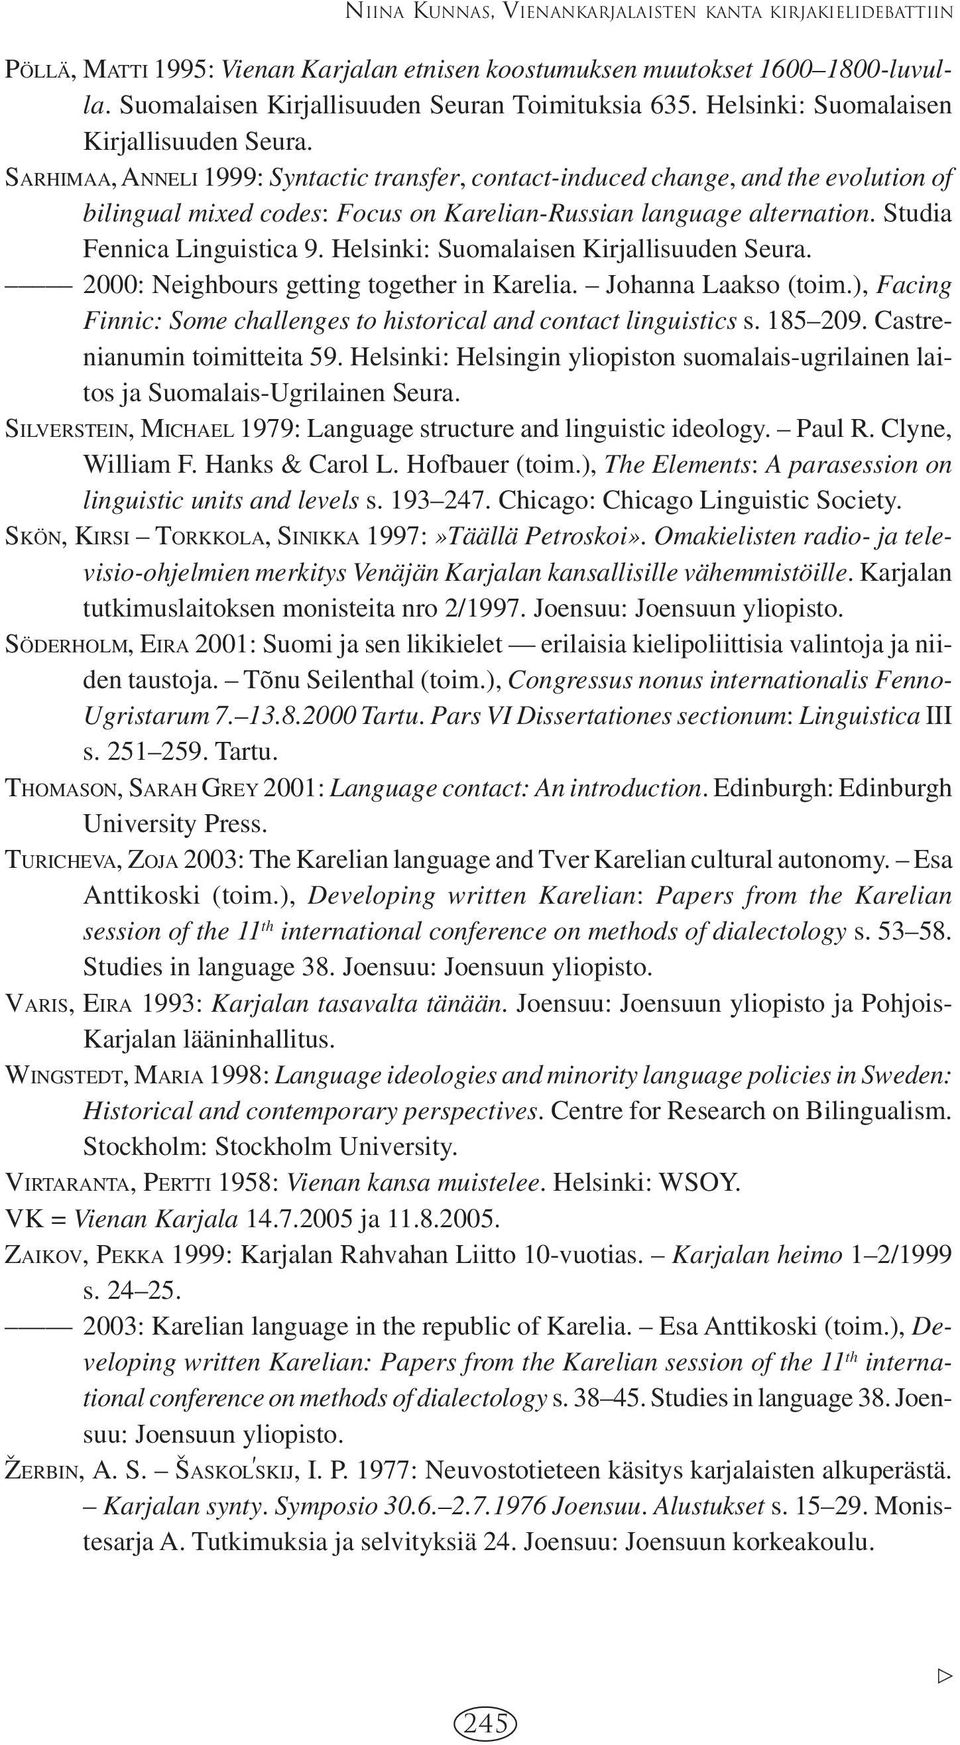 SARHIMAA, ANNELI 1999: Syntactic transfer, contact-induced change, and the evolution of bilingual mixed codes: Focus on Karelian-Russian language alternation. Studia Fennica Linguistica 9.